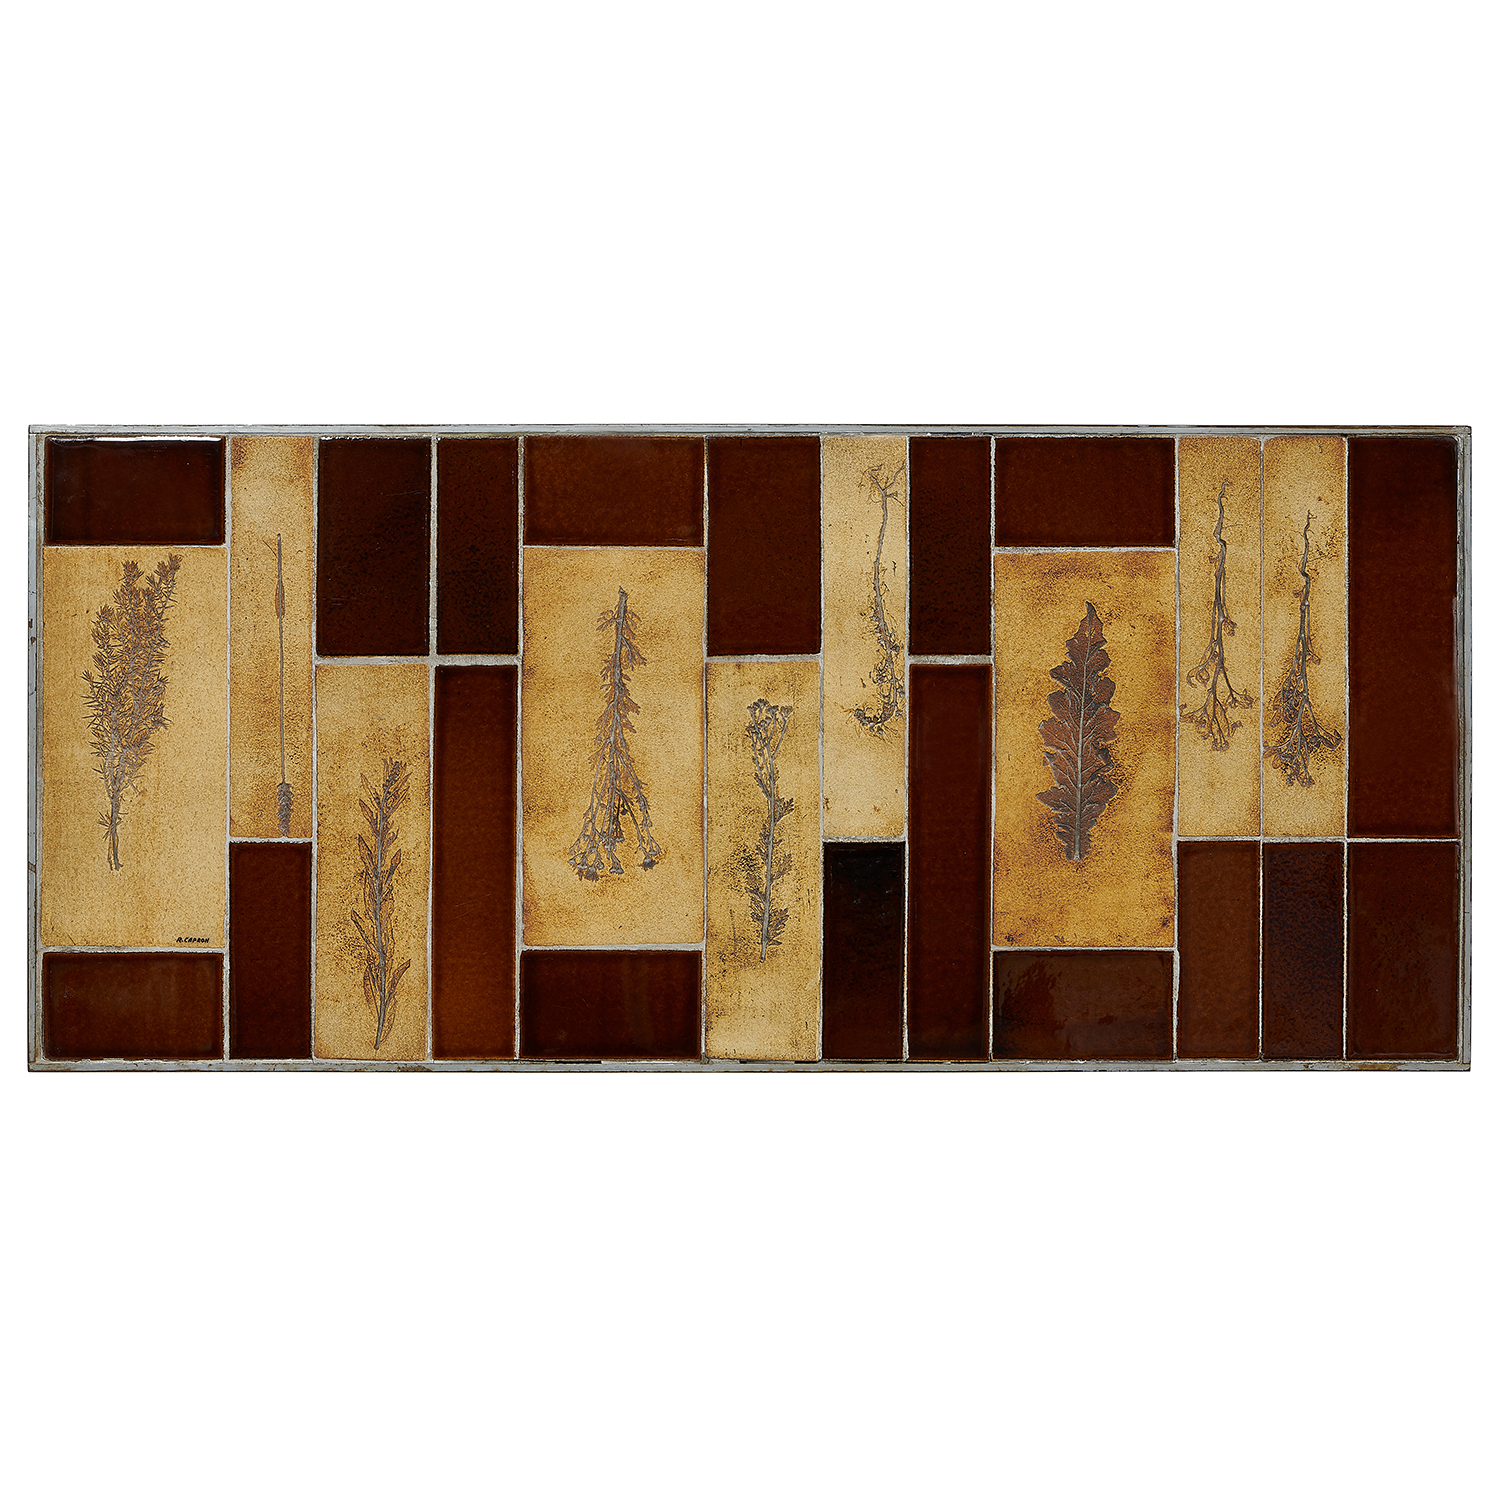 """Roger Capron (1922-2006) coffee table with leaf decorations 51""""w x 22 7/8""""d x 11 5/8""""h"""